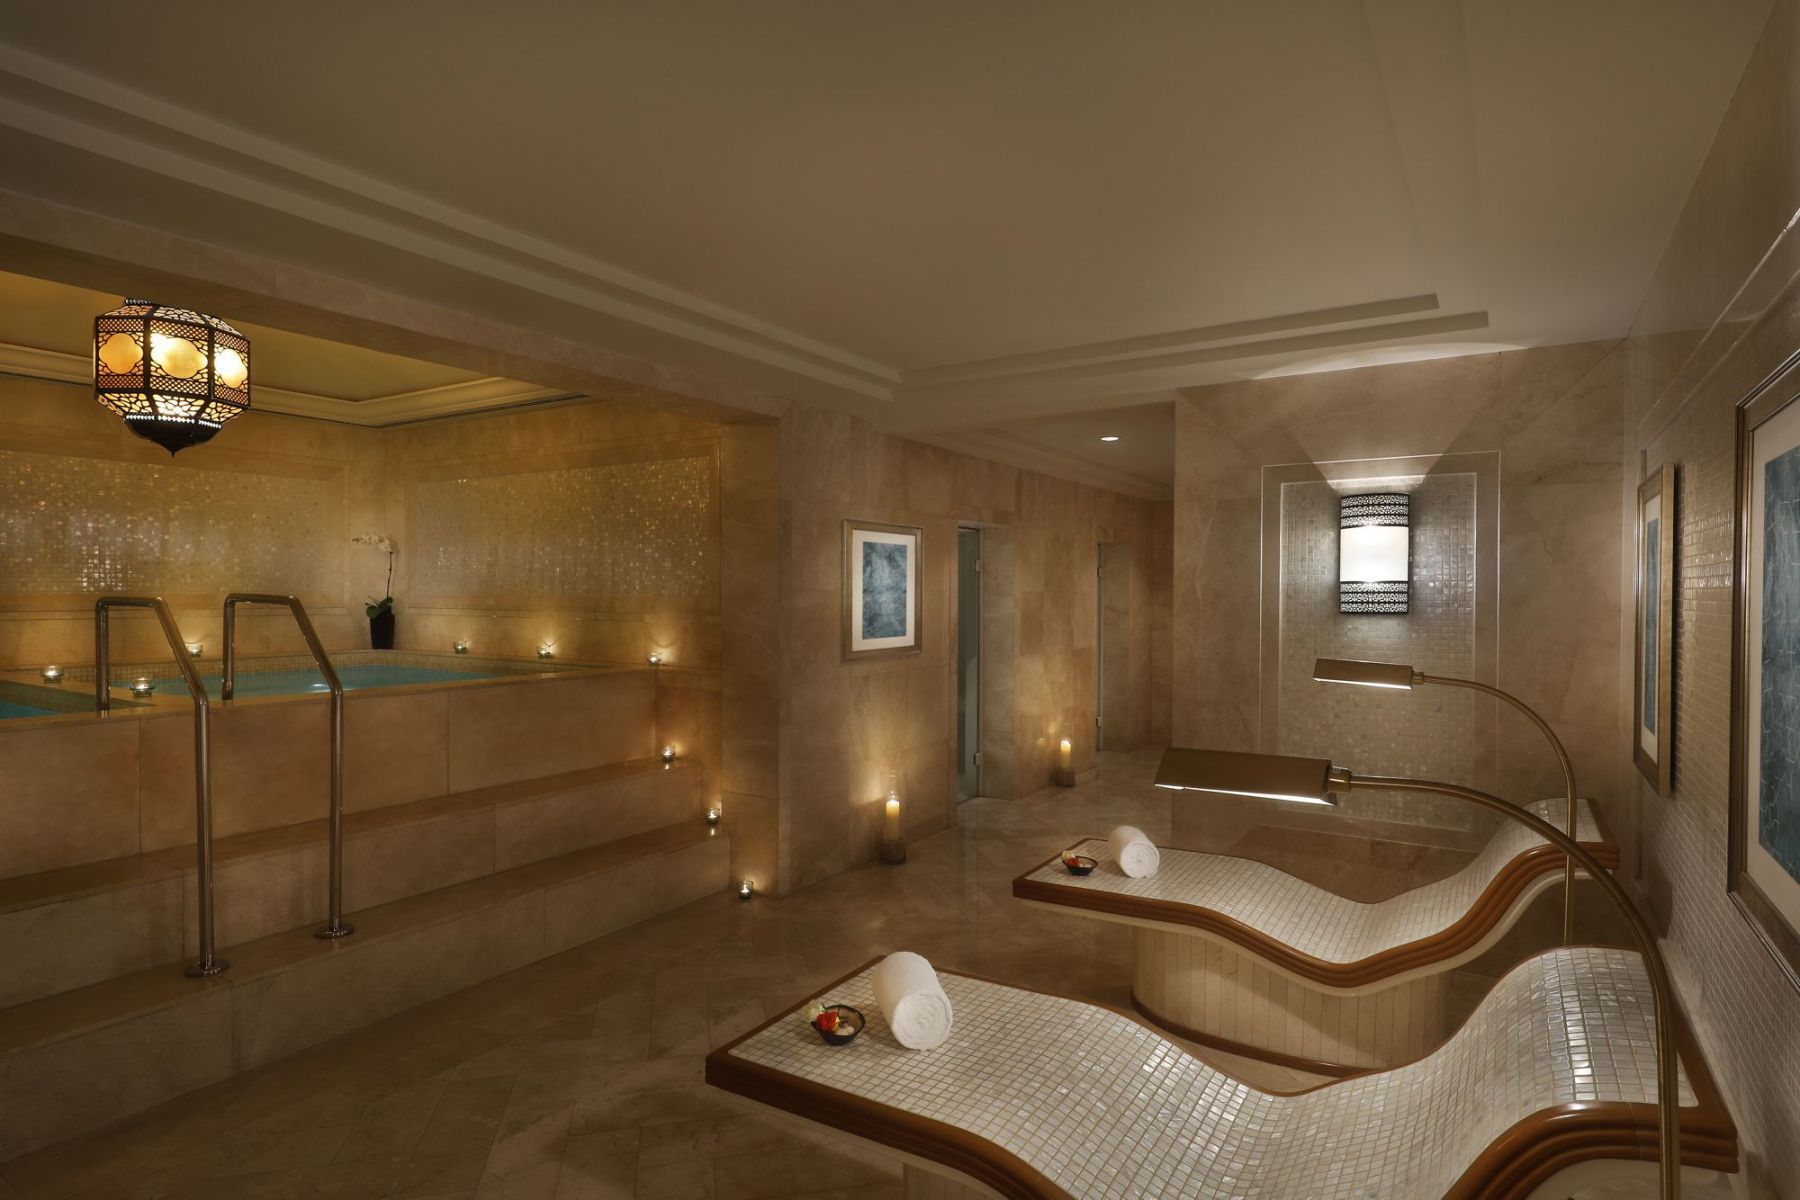 50573966-The-Ritz-Carlton-Spa-Dubai-JBR-Vitality-Area